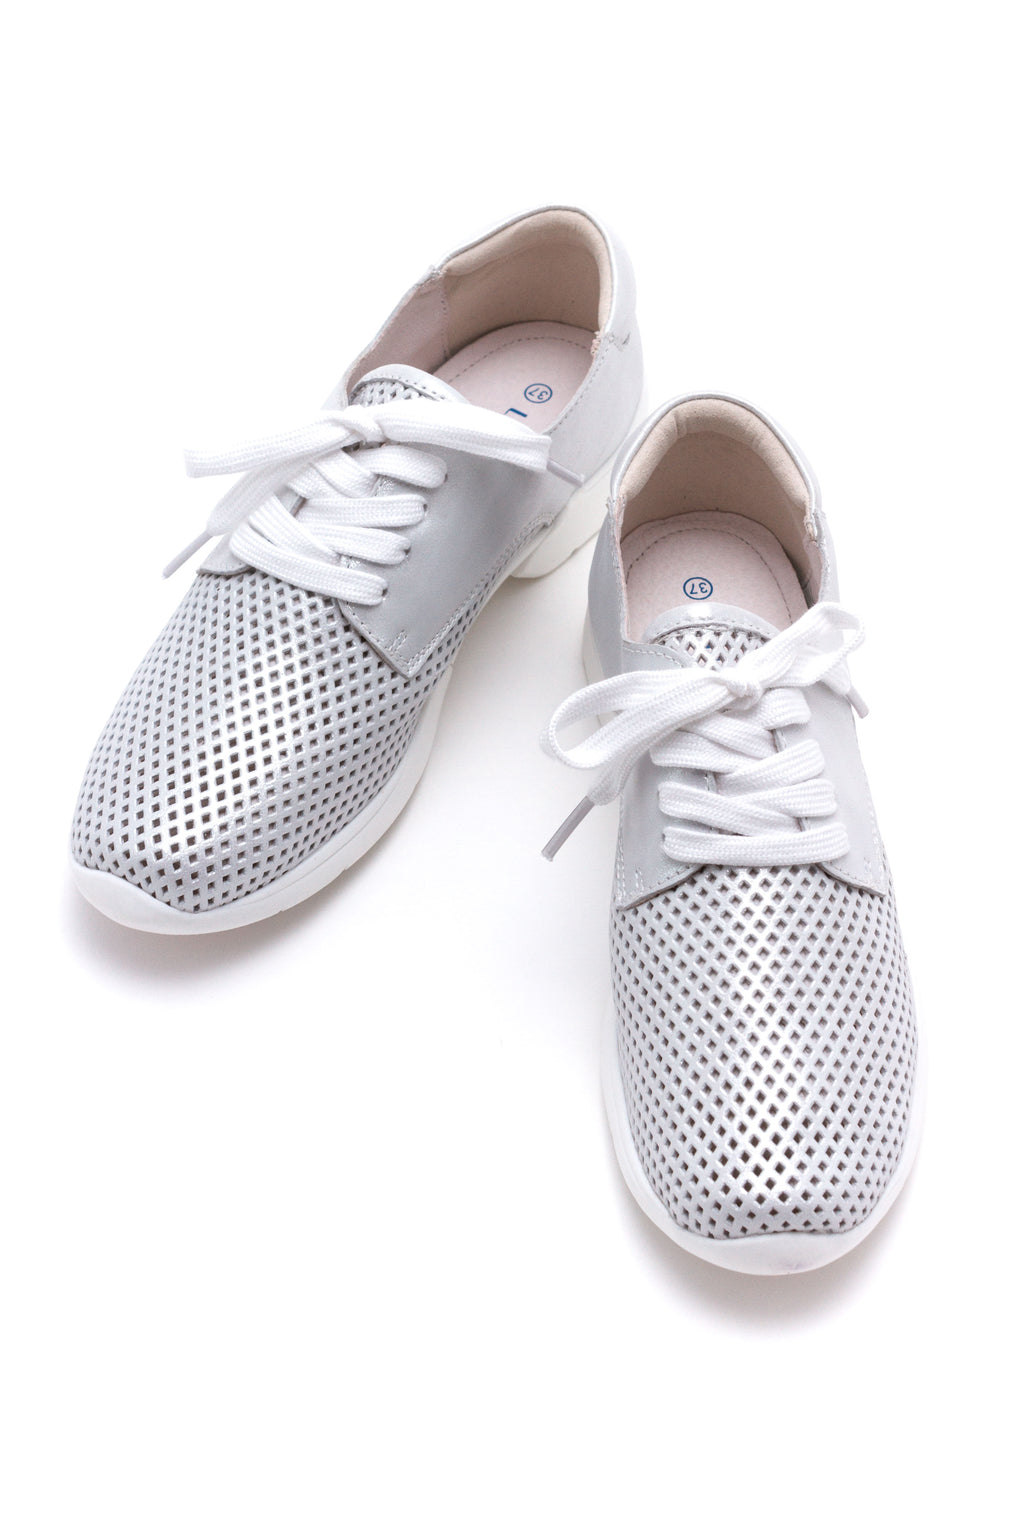 Perforated Shoe